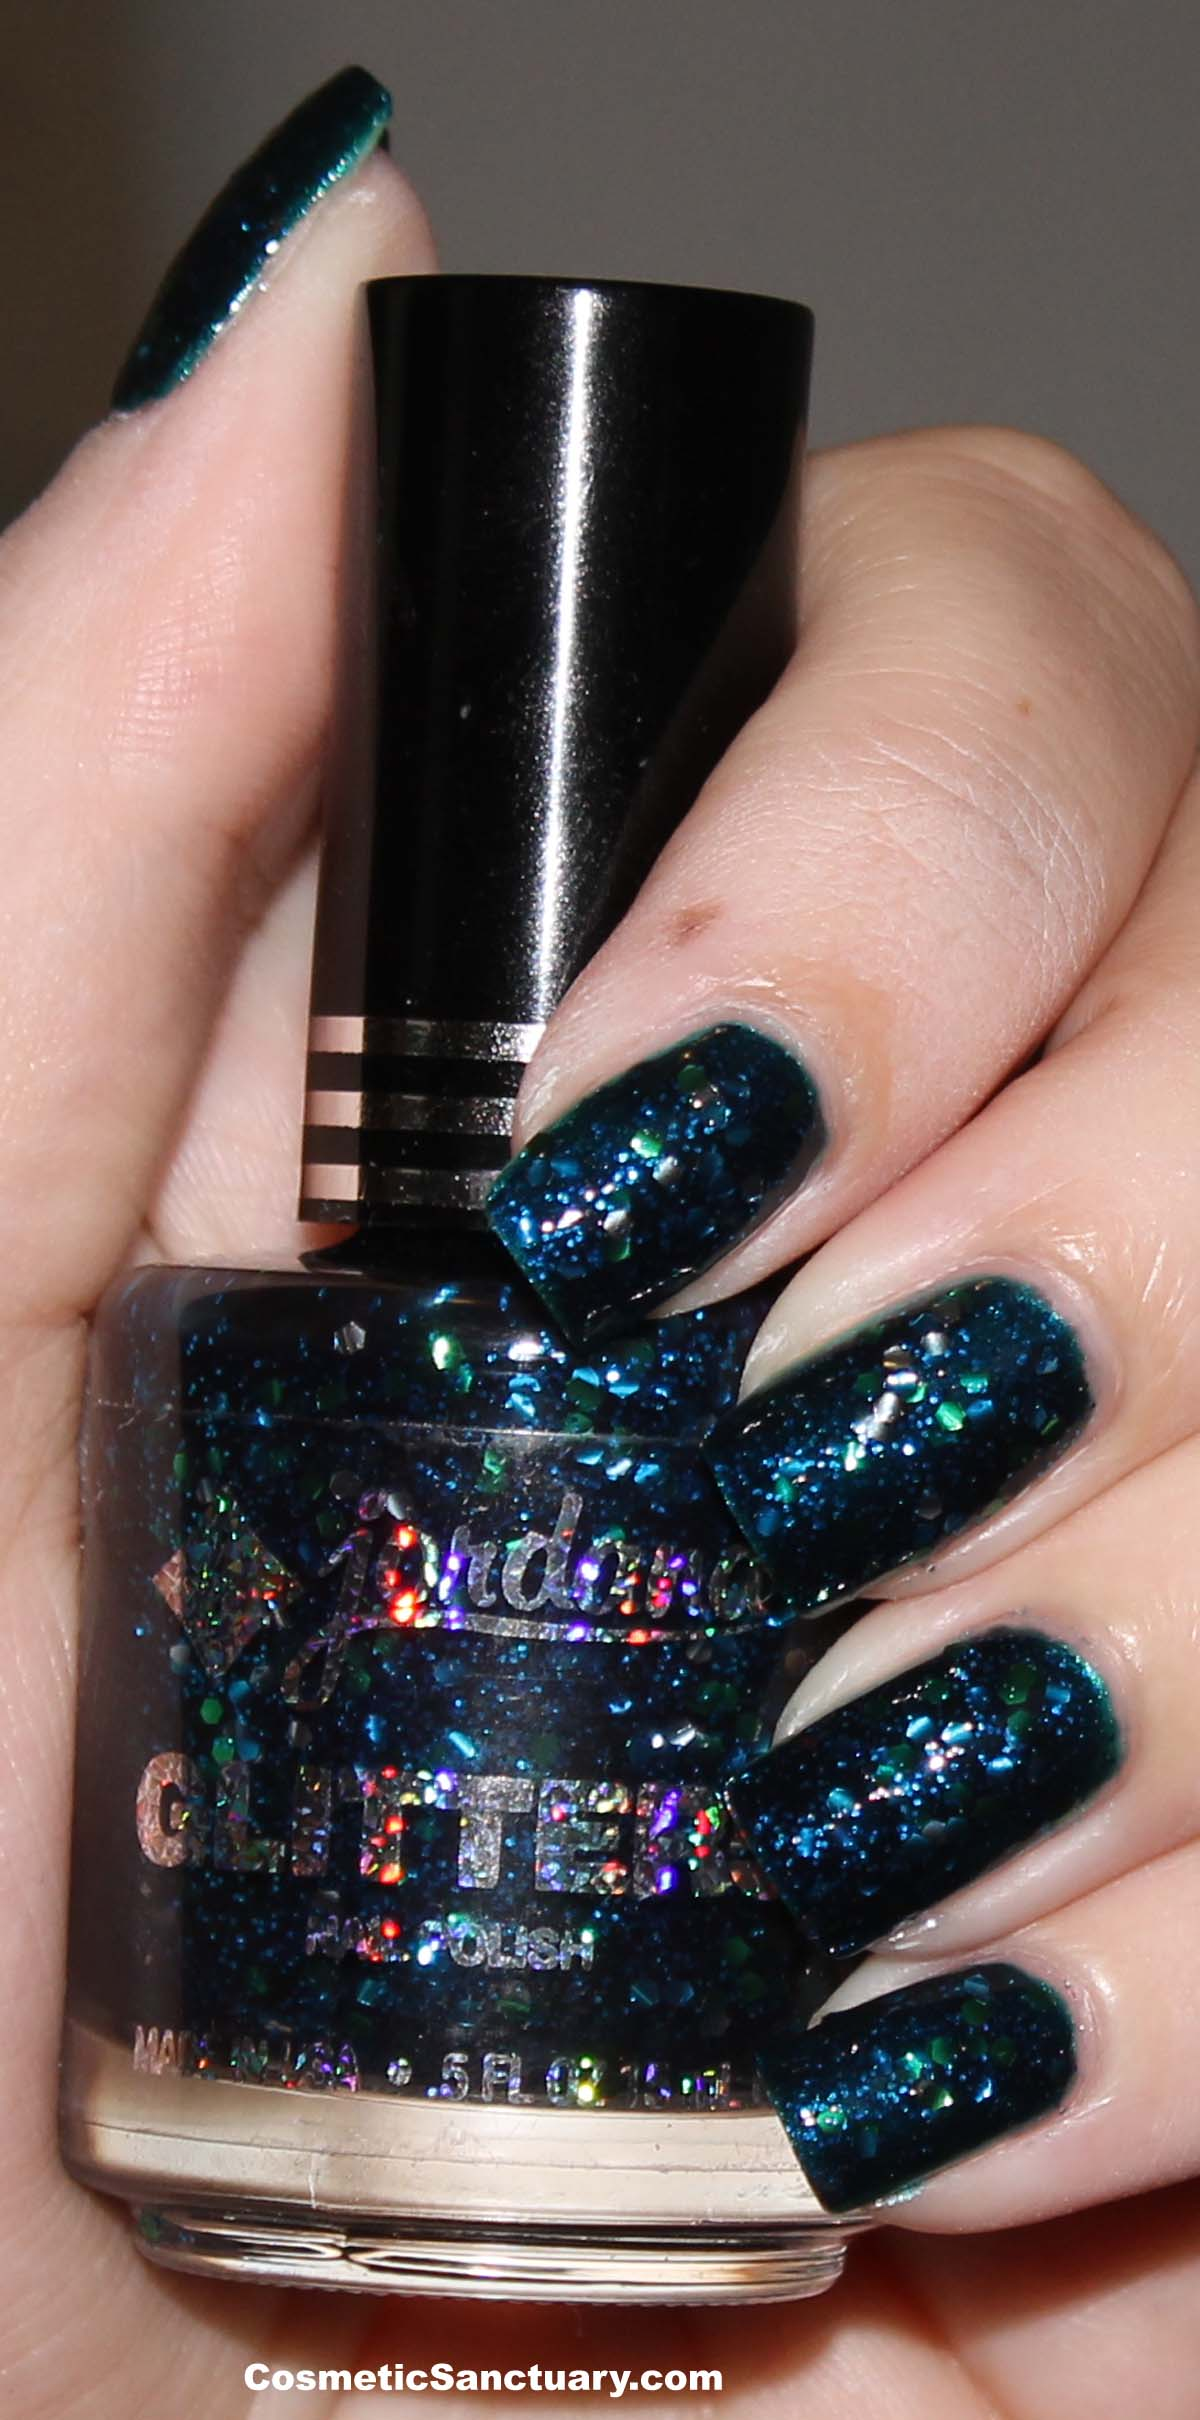 Jordana Glitter Specialty Nail Polish Swatches and Review